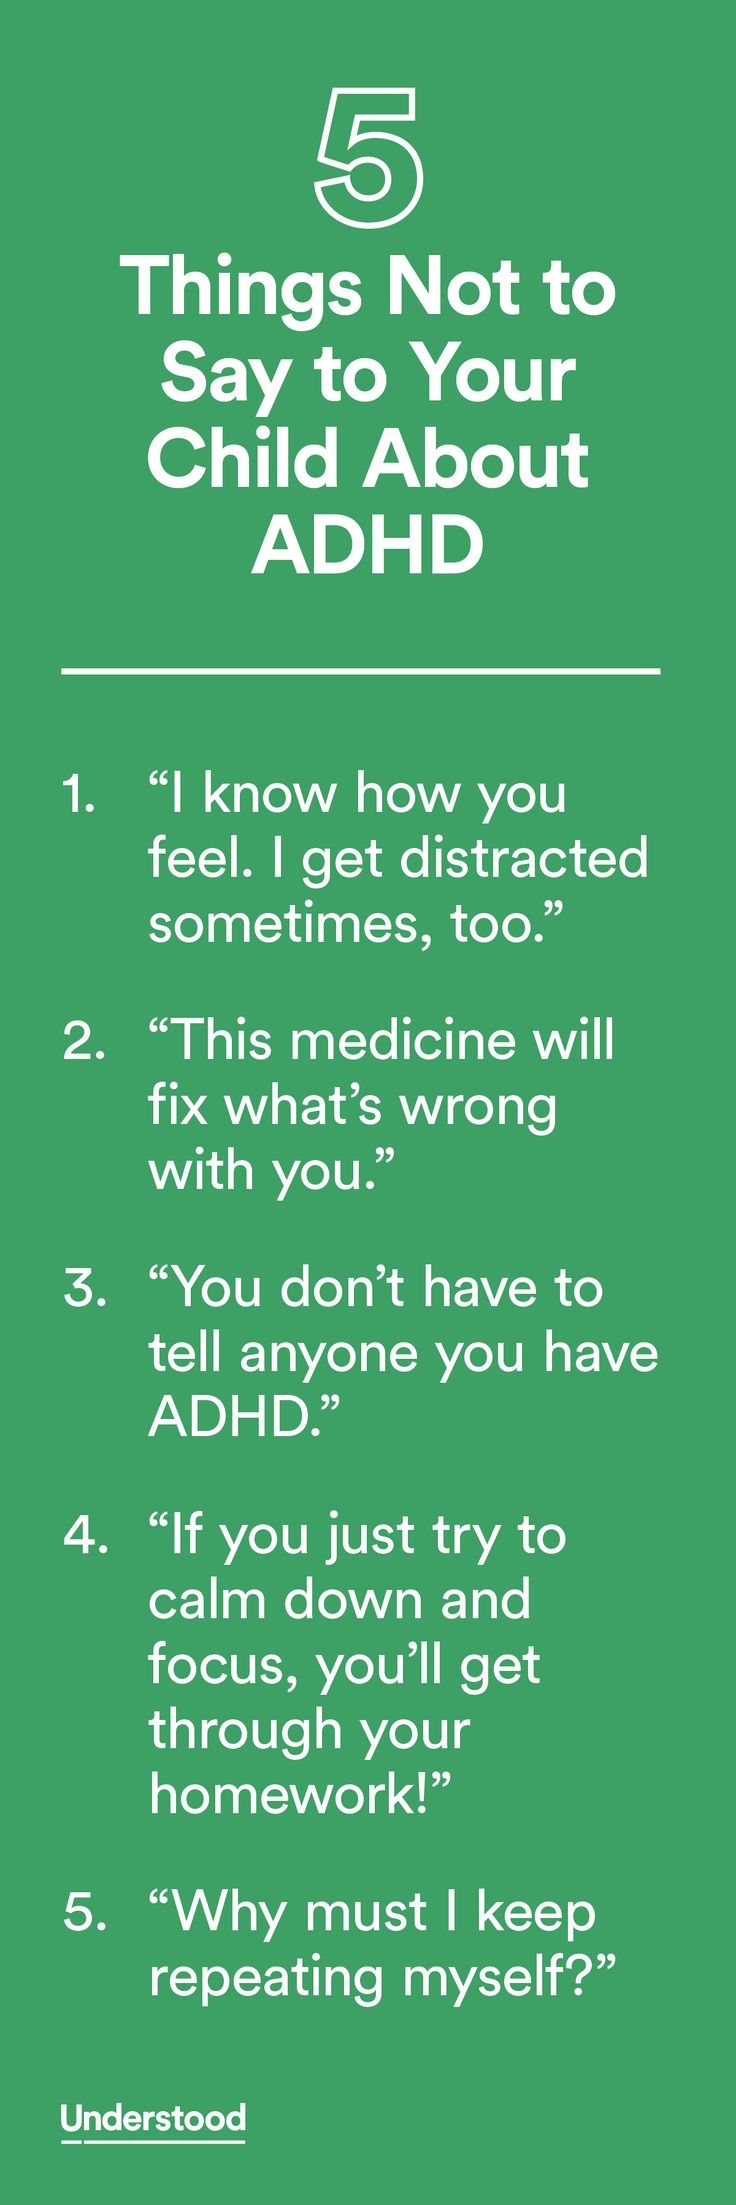 ten positive things about adhd 7 facts you need to know about adhd association between adult attention deficit/hyperactivity disorder and obesity in the us population.